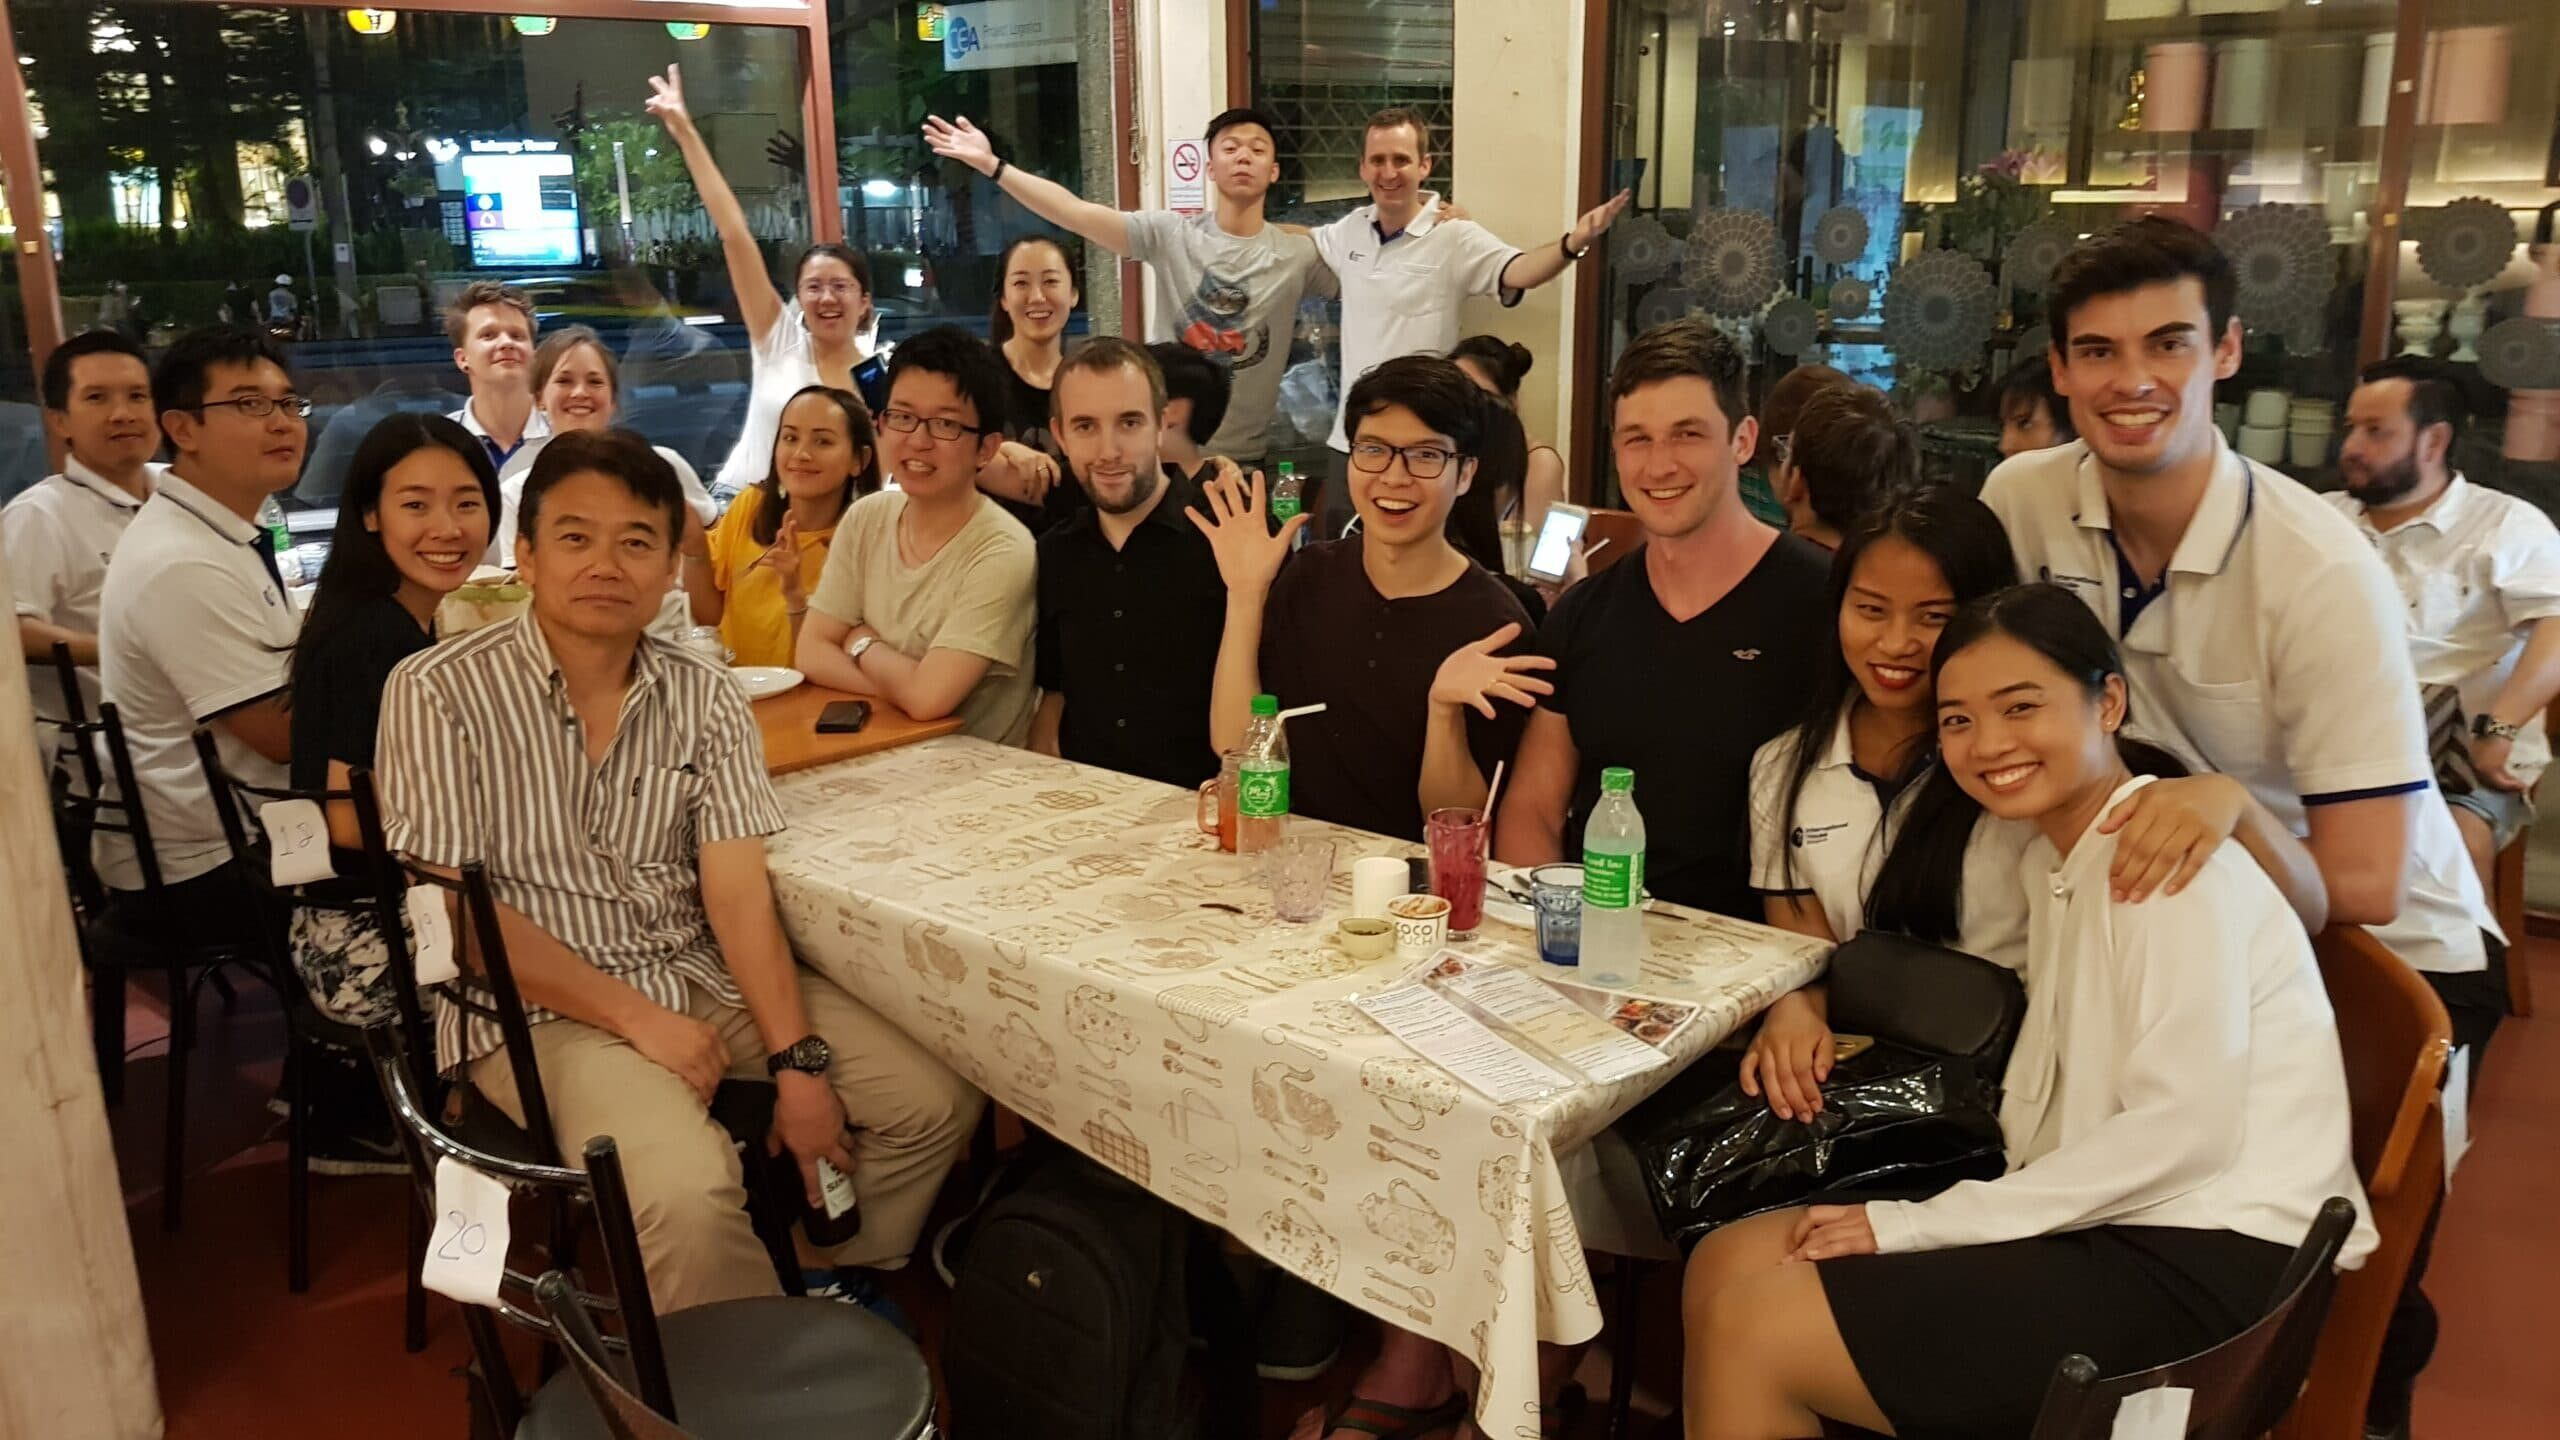 Study Holiday 6 – Social Dinner